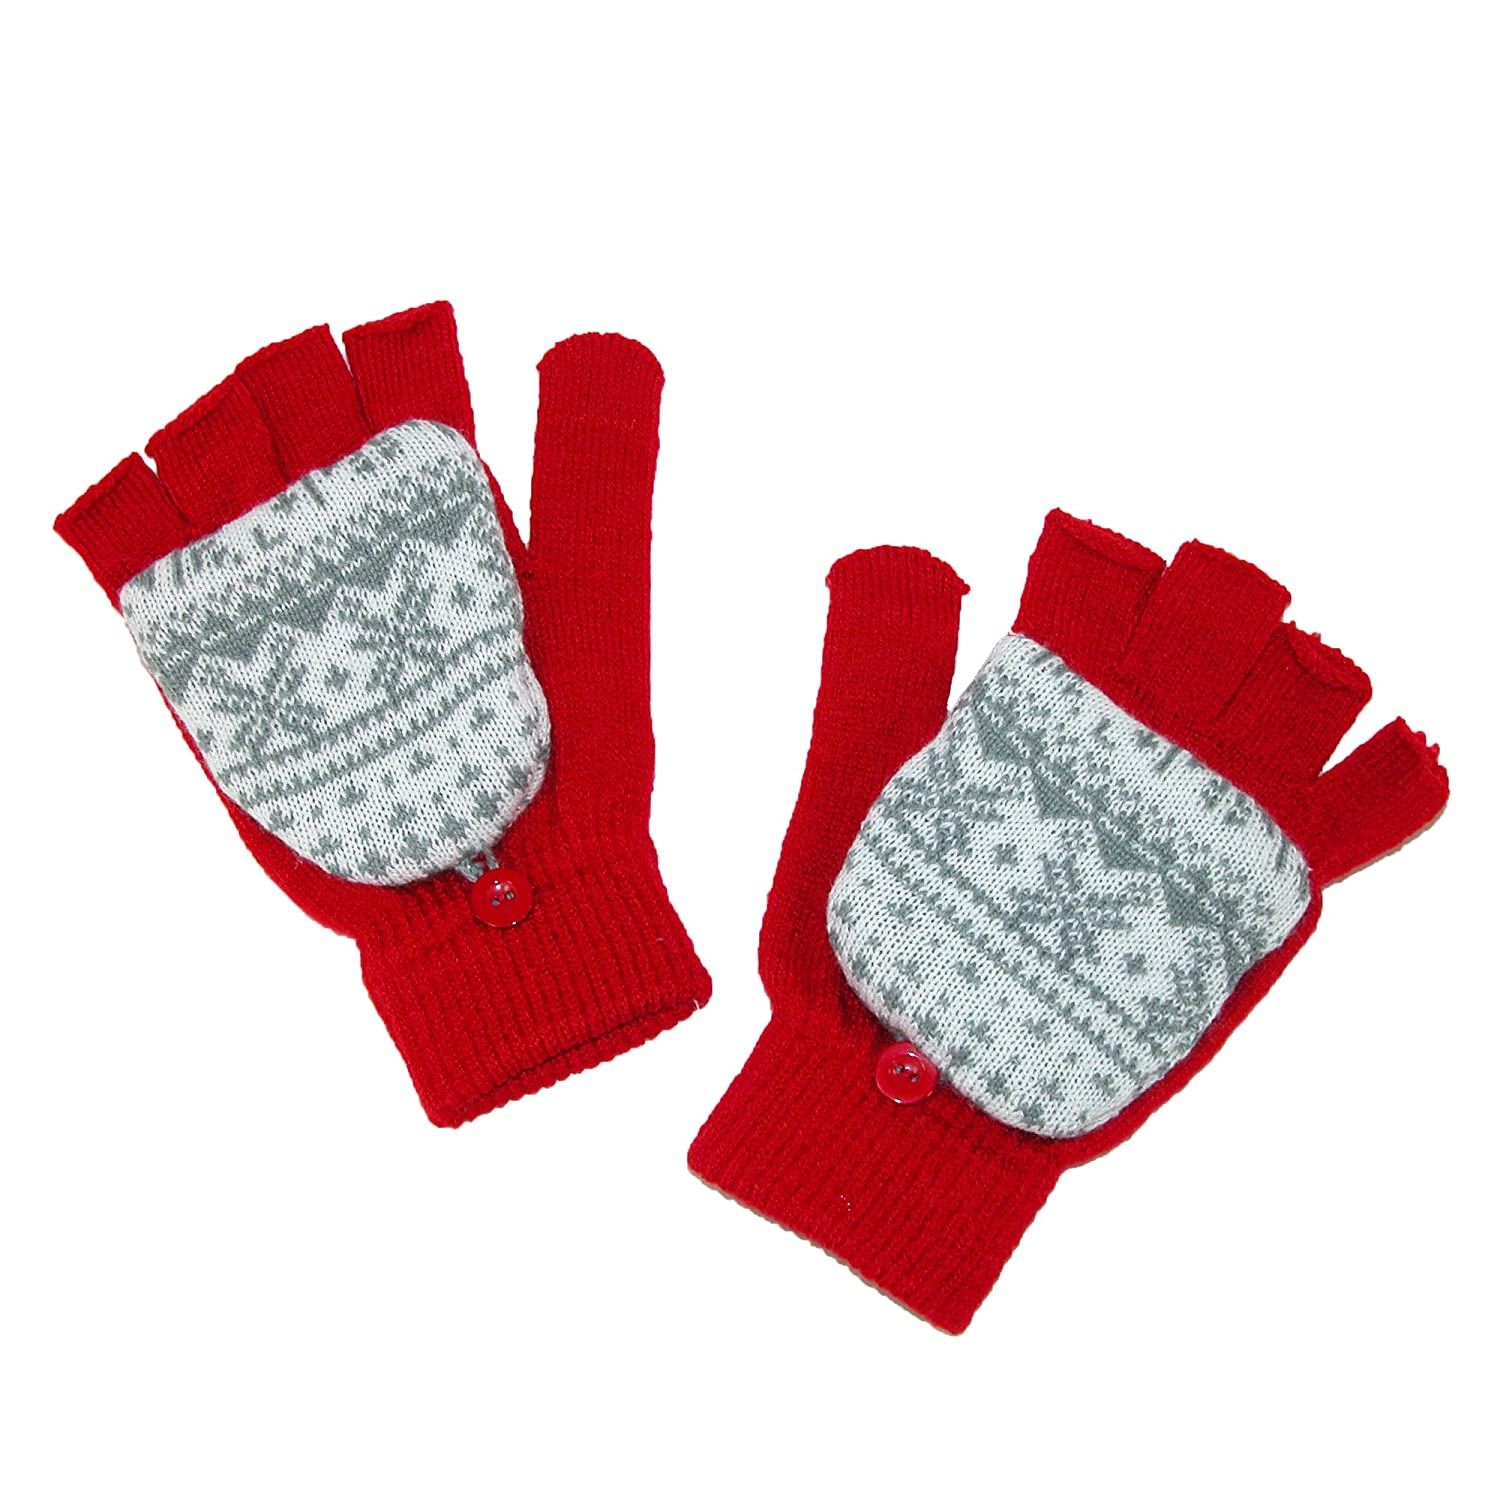 Aquarius Kids' Fairisle Print Convertible Mitten Fingerless Gloves, Red